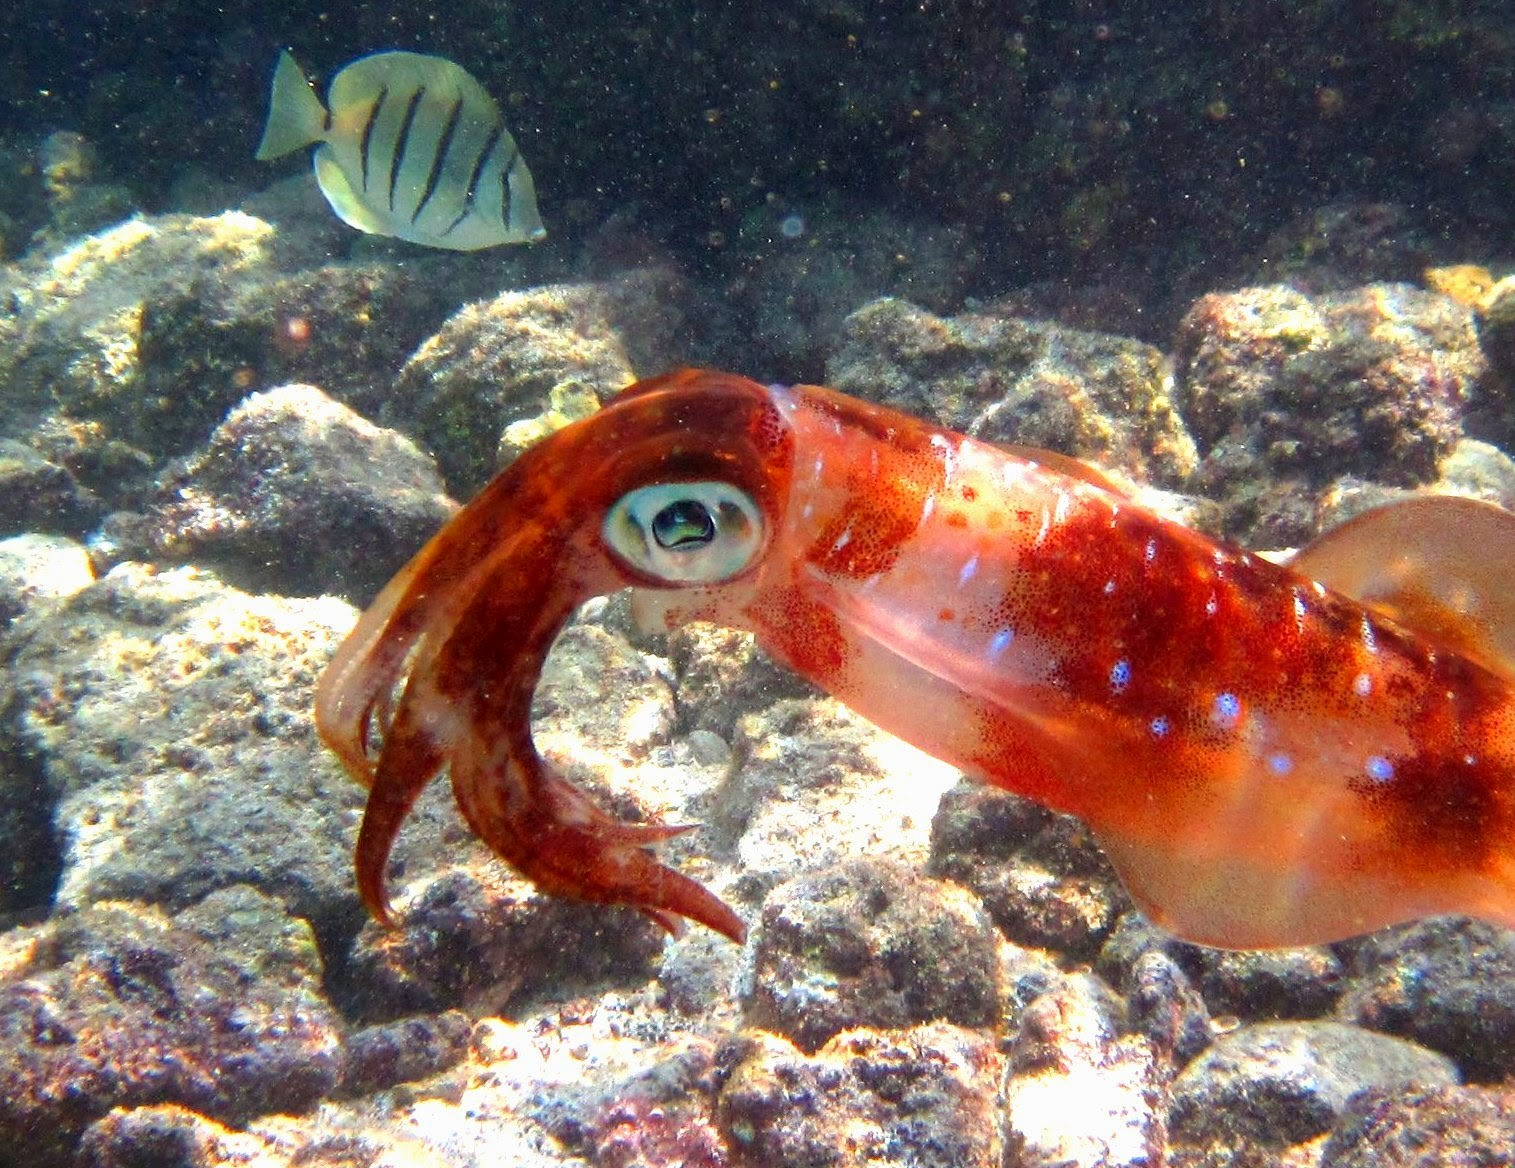 Kona Snorkeling, Fish Watching and Other Adventures: March 2015